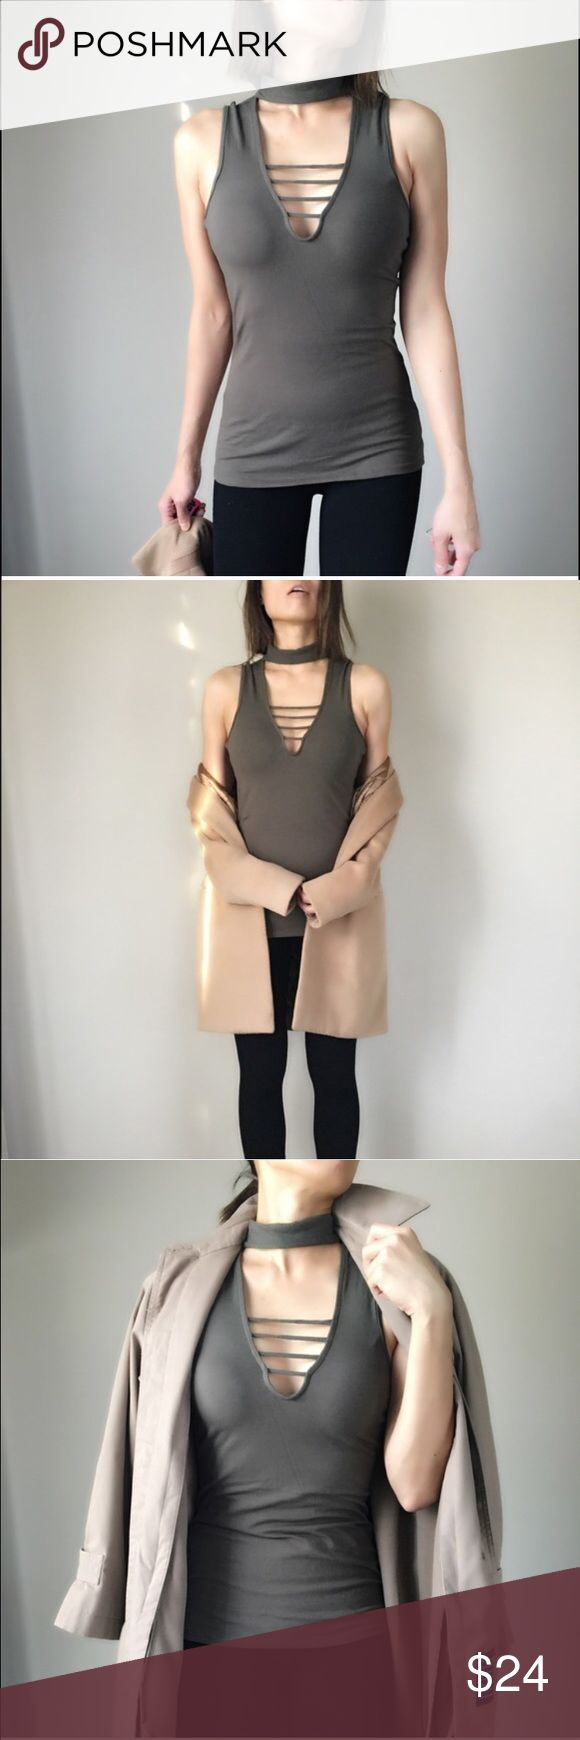 """Mock choker bodycon top Mock choker body con top. In dirty olive. 2 button back neck. Great for stylish everyday wear. Size S bust 30"""" length 26"""" w:26"""", size M bust 31"""", length 27, w:27"""". Stretchable body con material. 👉🏼Follow me on  📸INSTAGRAM: @chic_bomb  and 💁🏻📘FACEBOOK: @thechicbomb CHICBOMB Tops"""